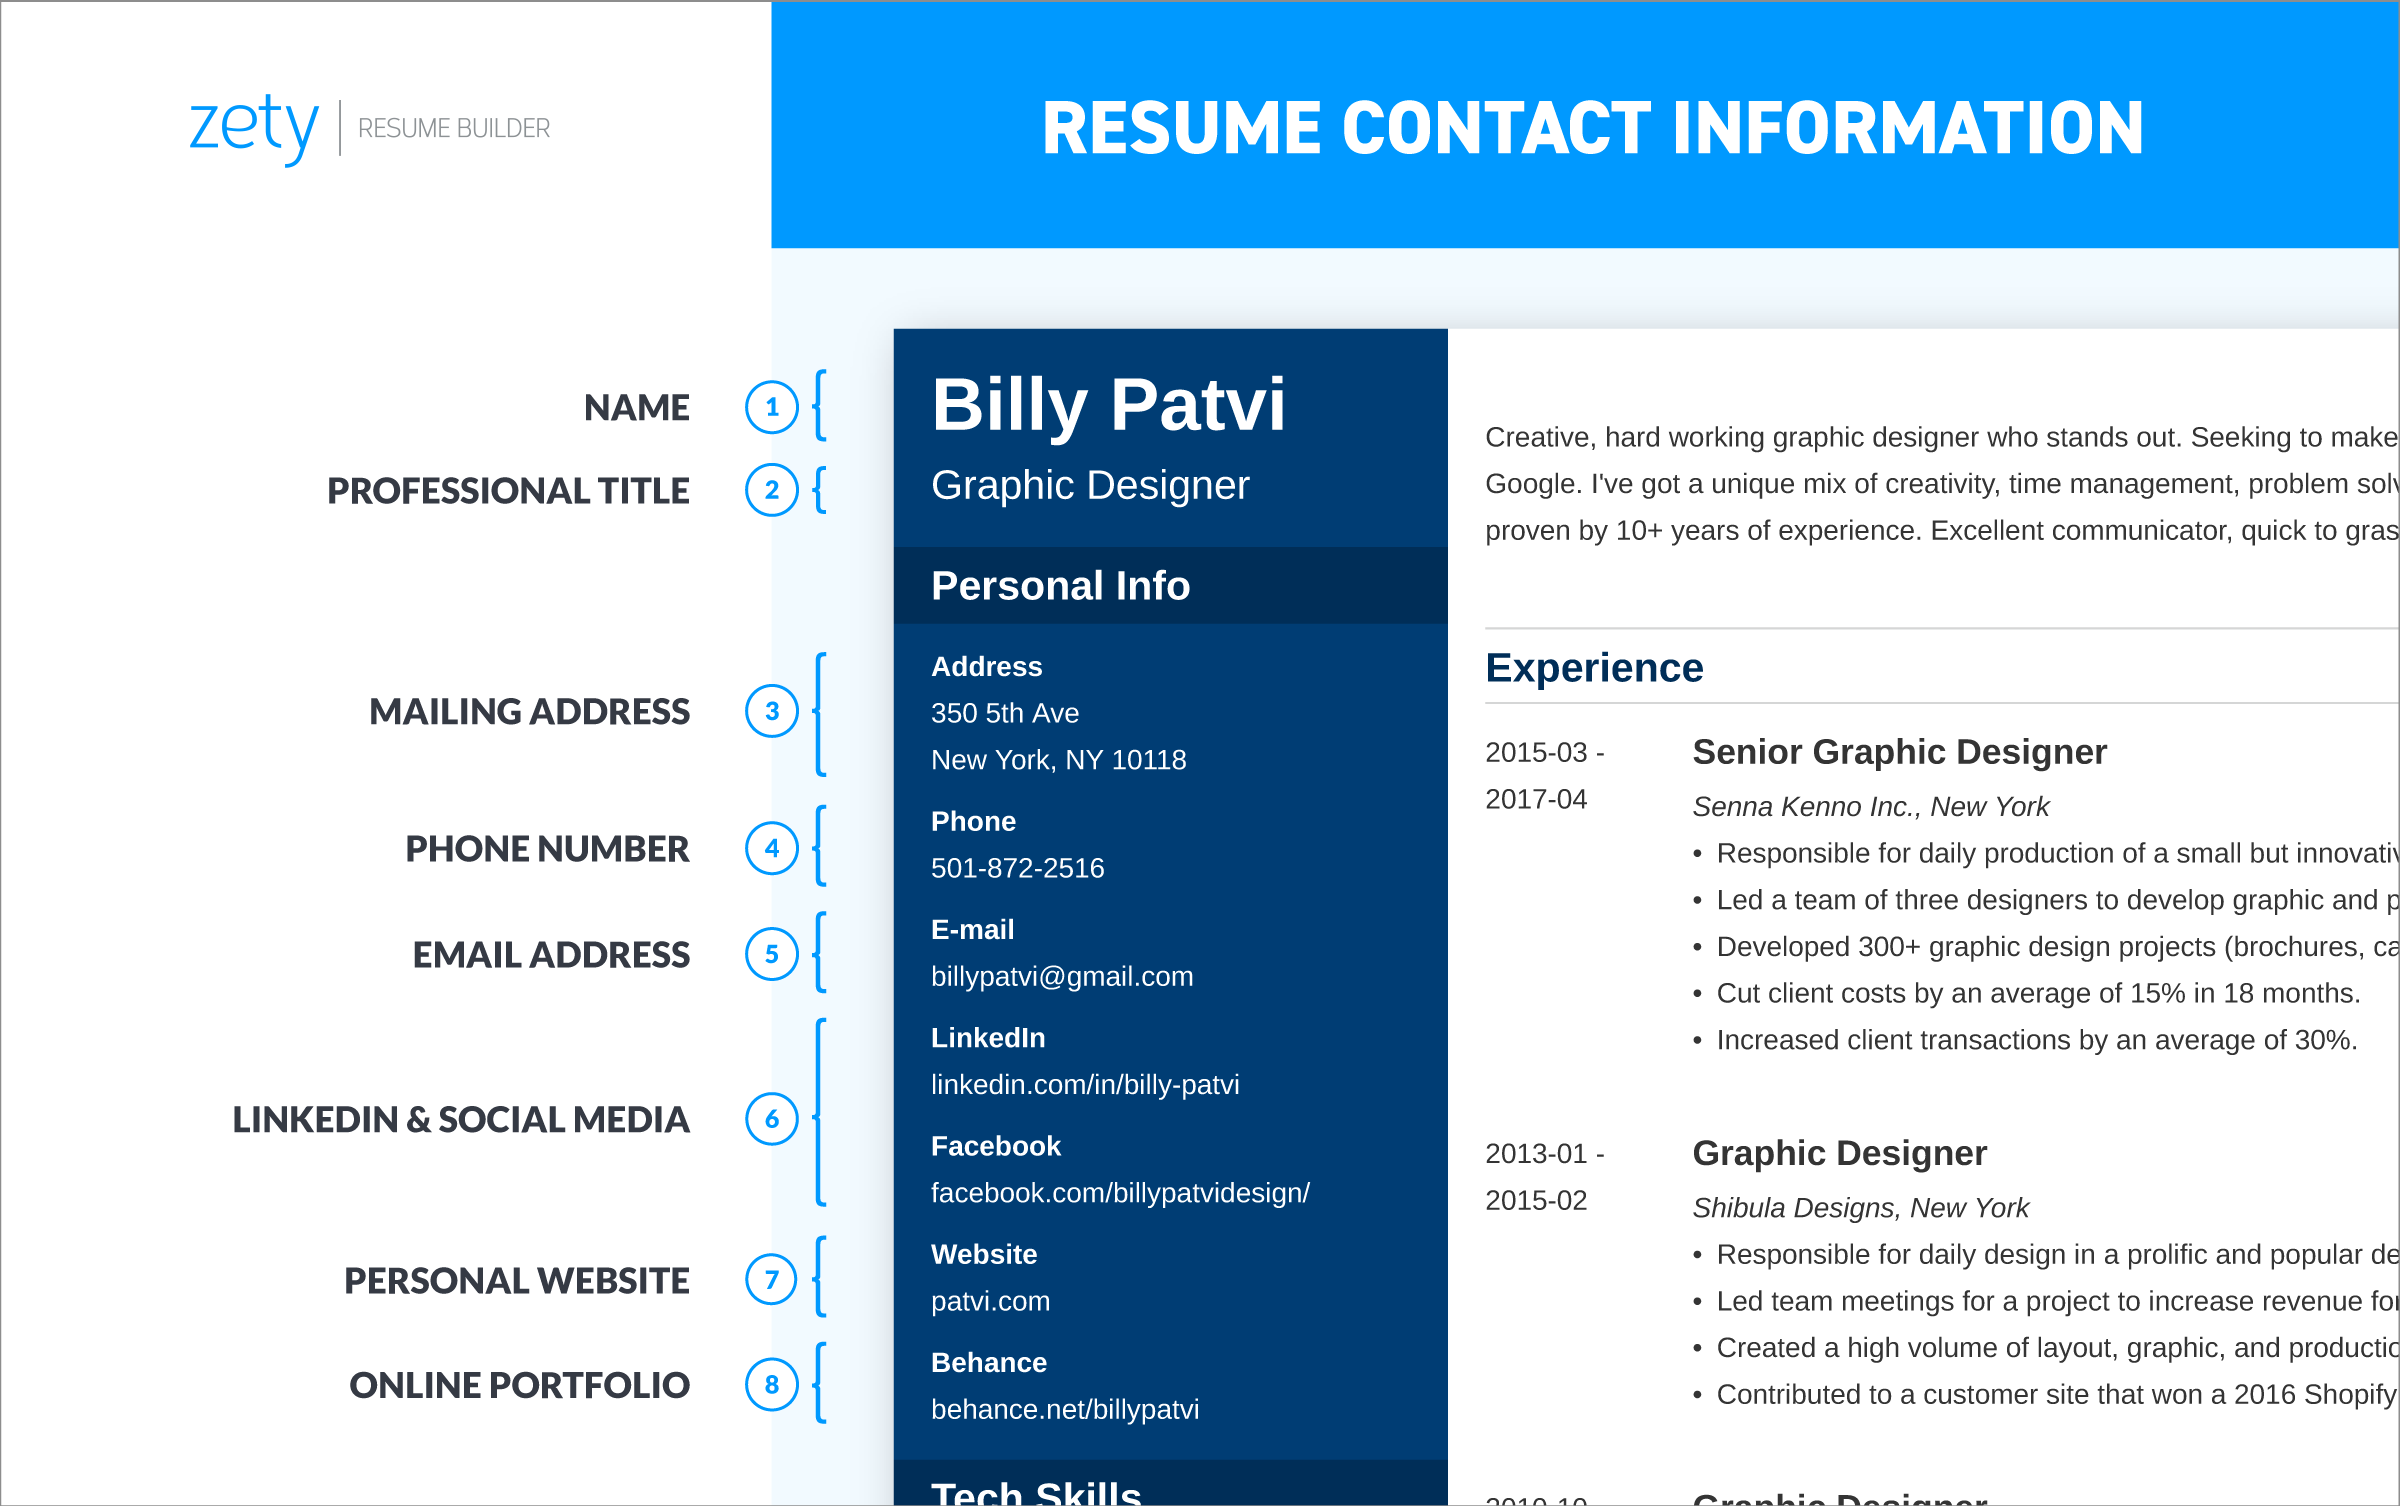 resume contact information tips  phone number  u0026 more